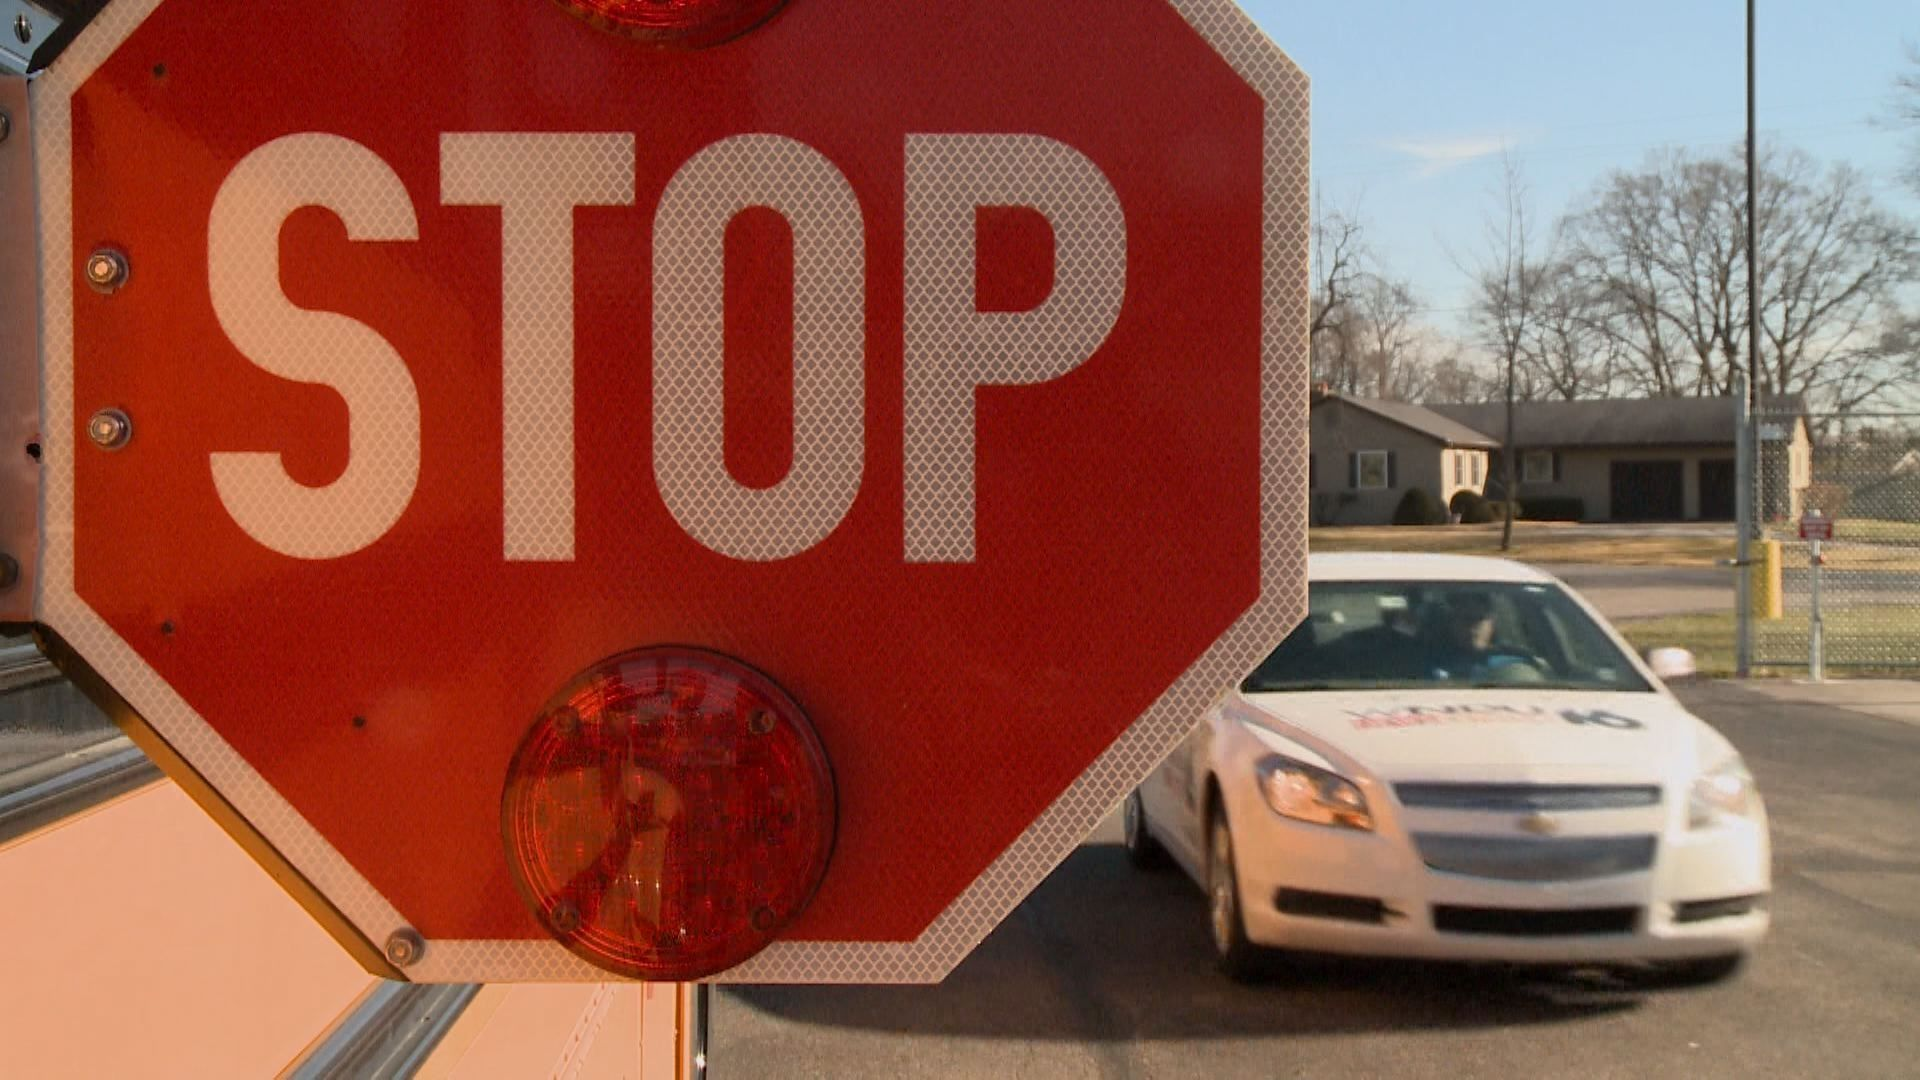 Stop Sign Wallpapers - Top Free Stop Sign Backgrounds